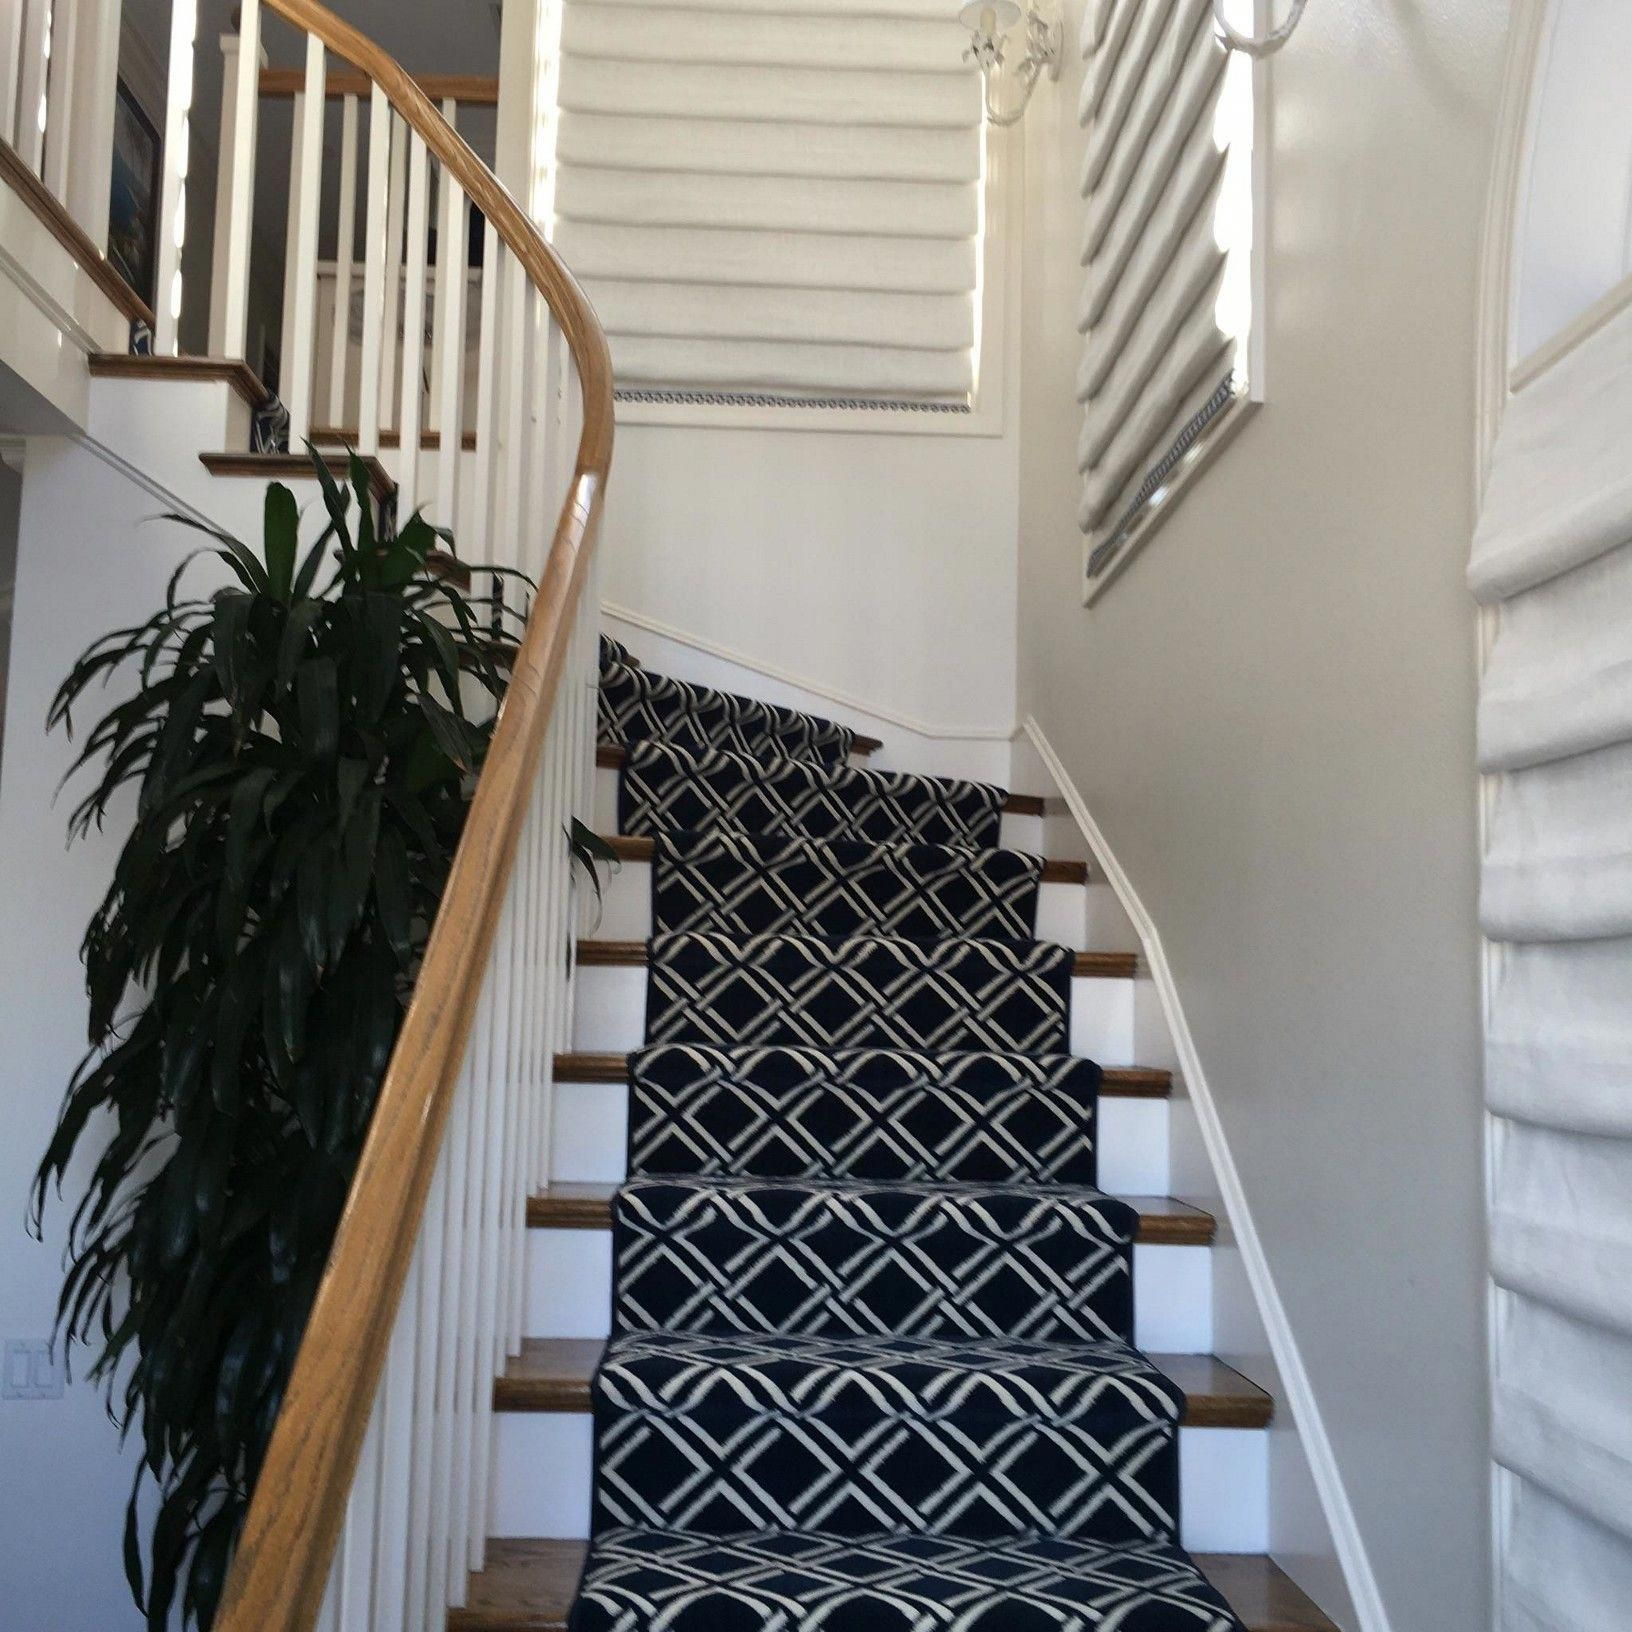 Luxury Carpet Runners For Stairs Carpetrunnersdecoration